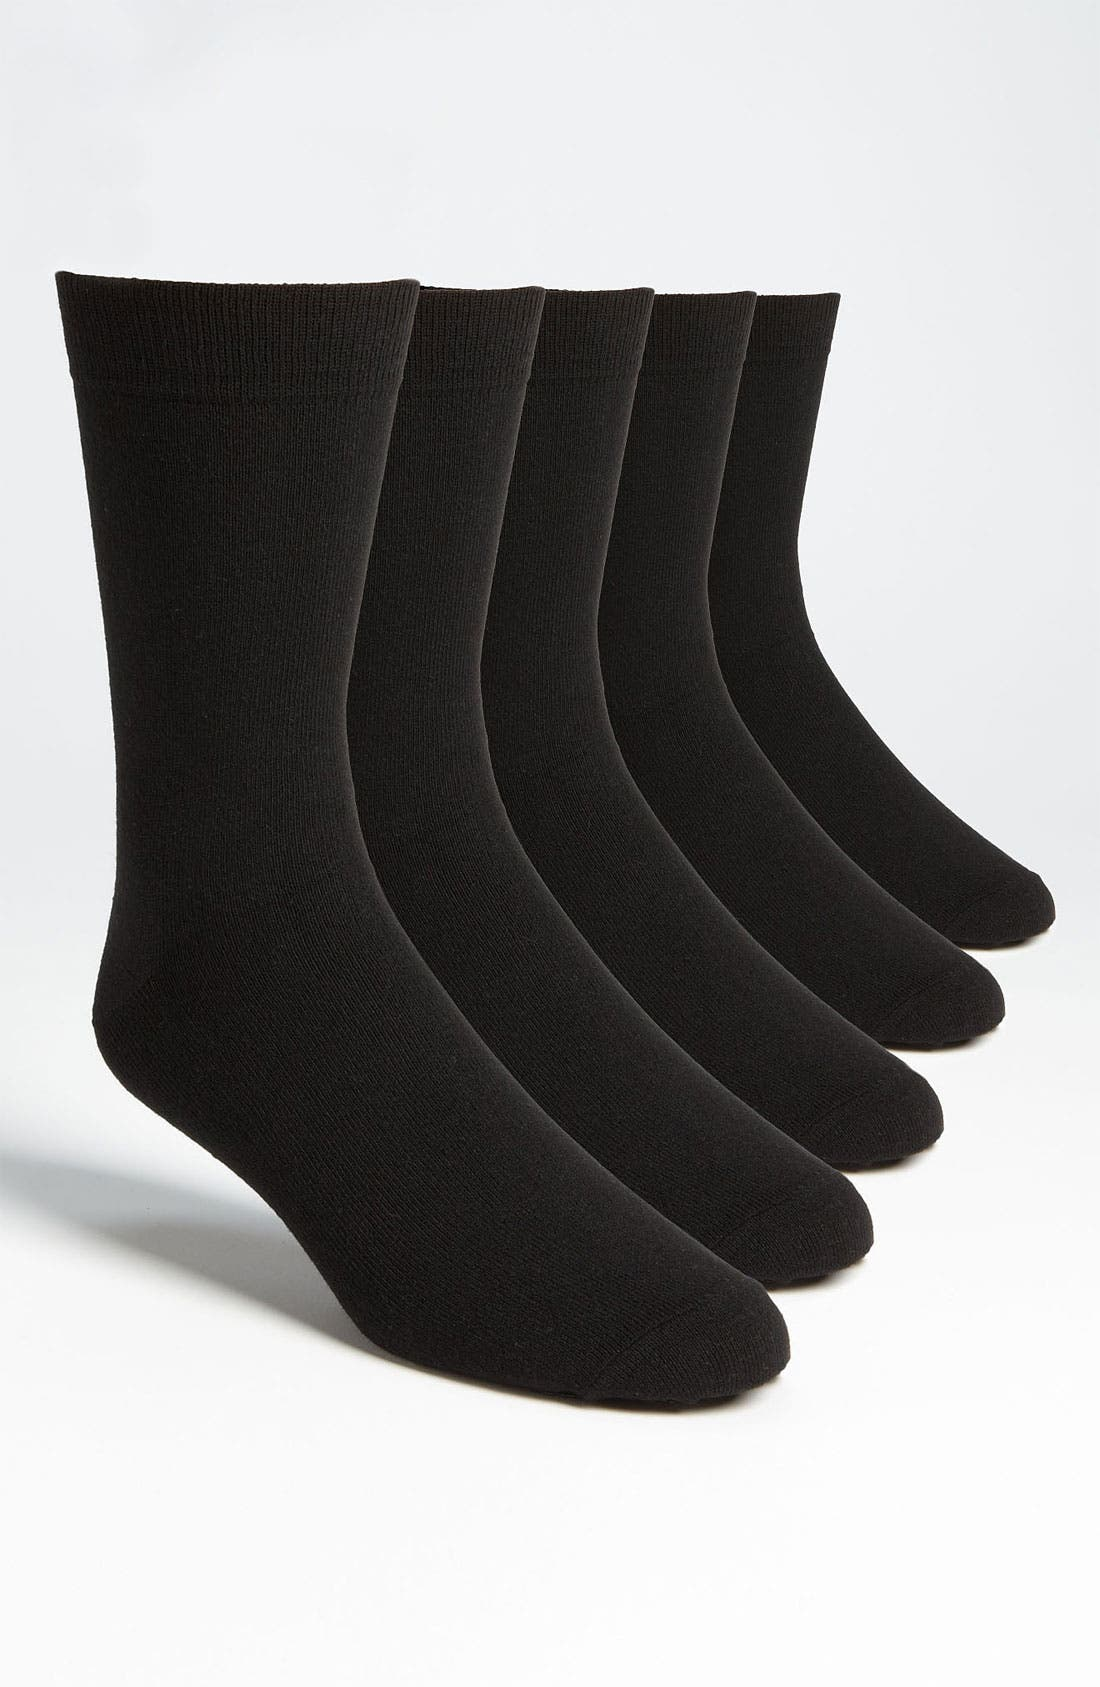 Alternate Image 1 Selected - Topman Socks (5-Pack)